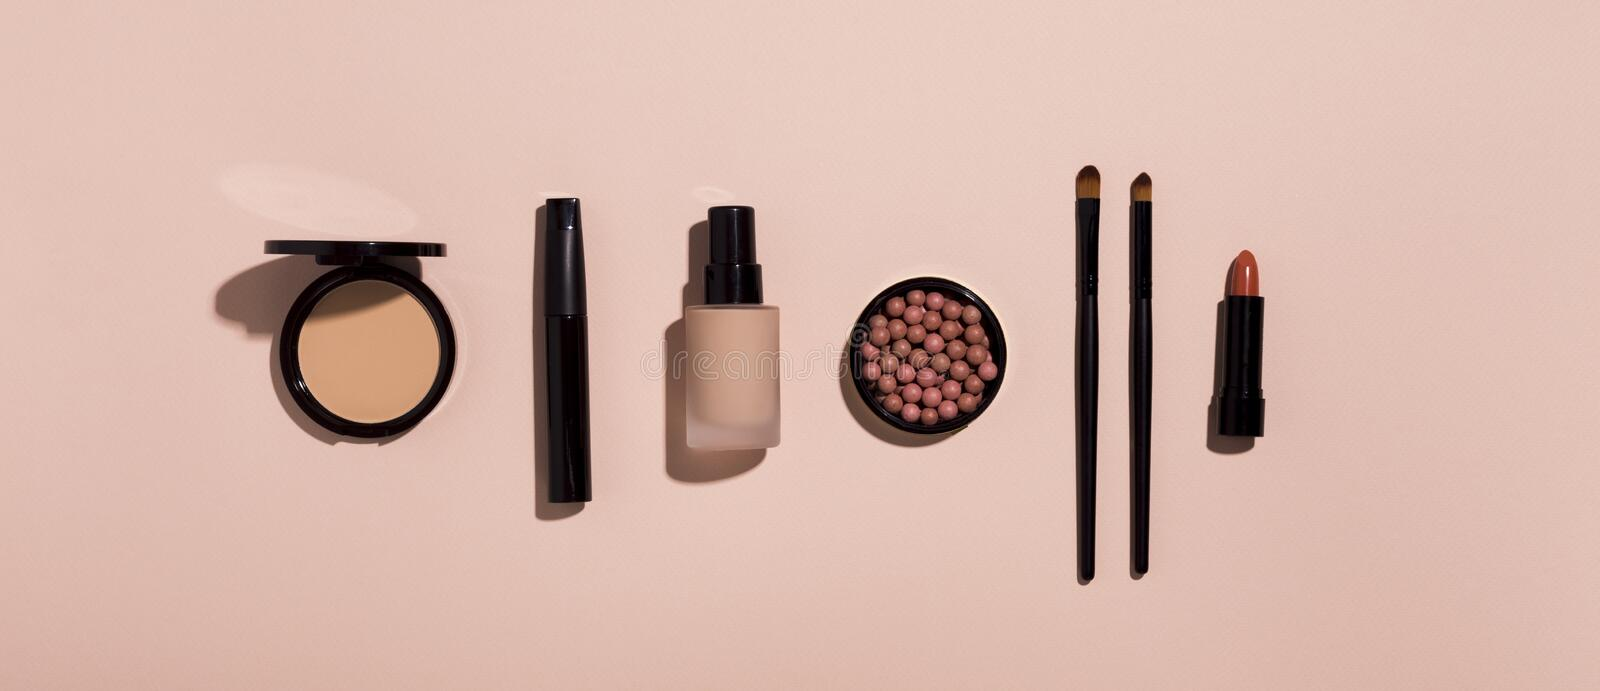 Makeup products in row on pink background stock image